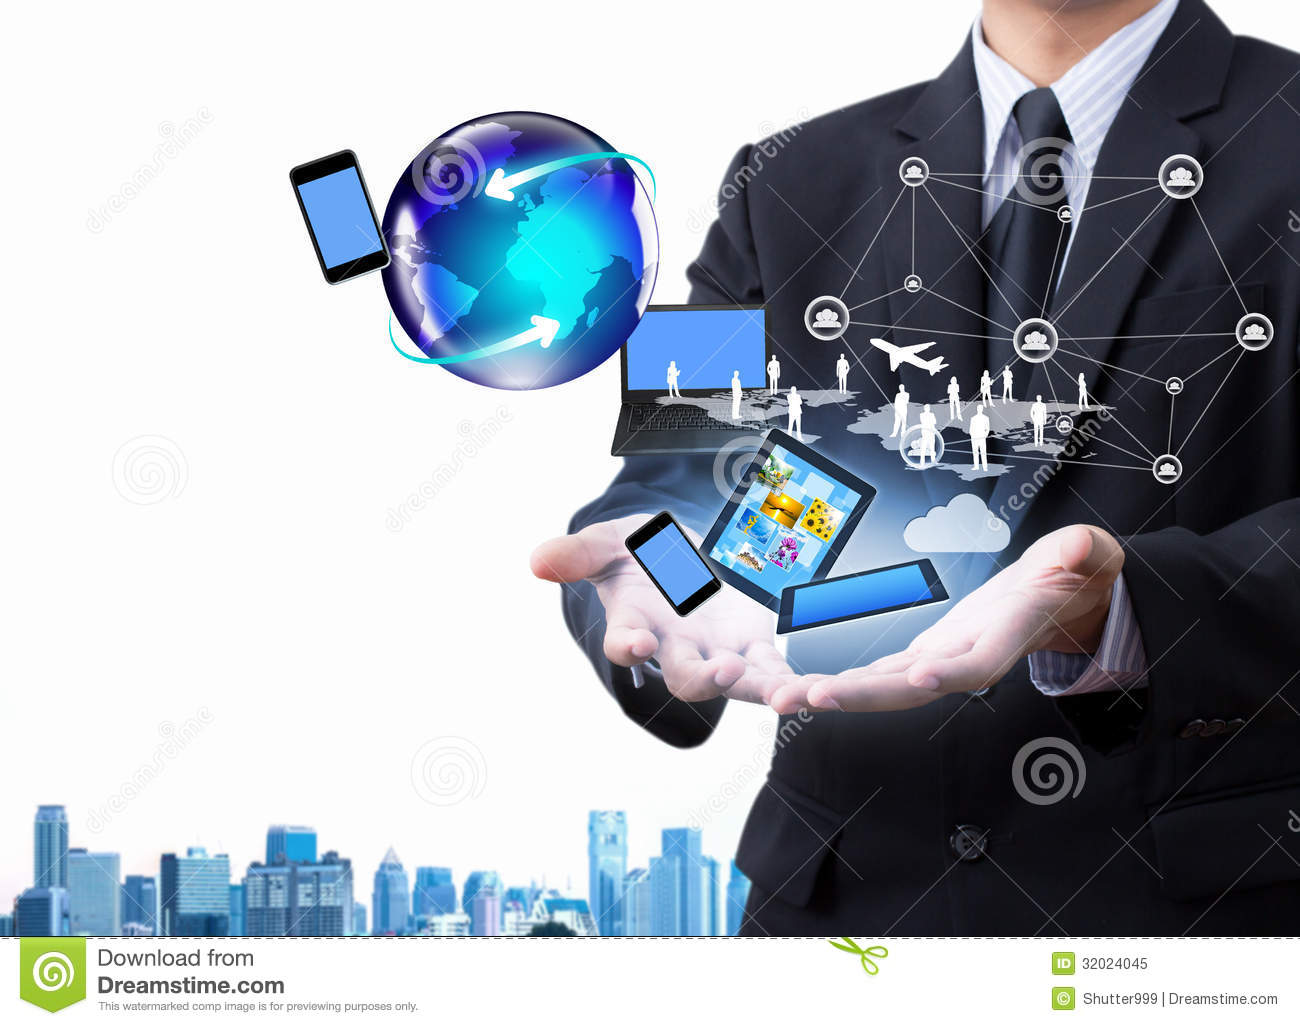 New 3d Animation Wallpaper Technology In Business Hand Royalty Free Stock Photo